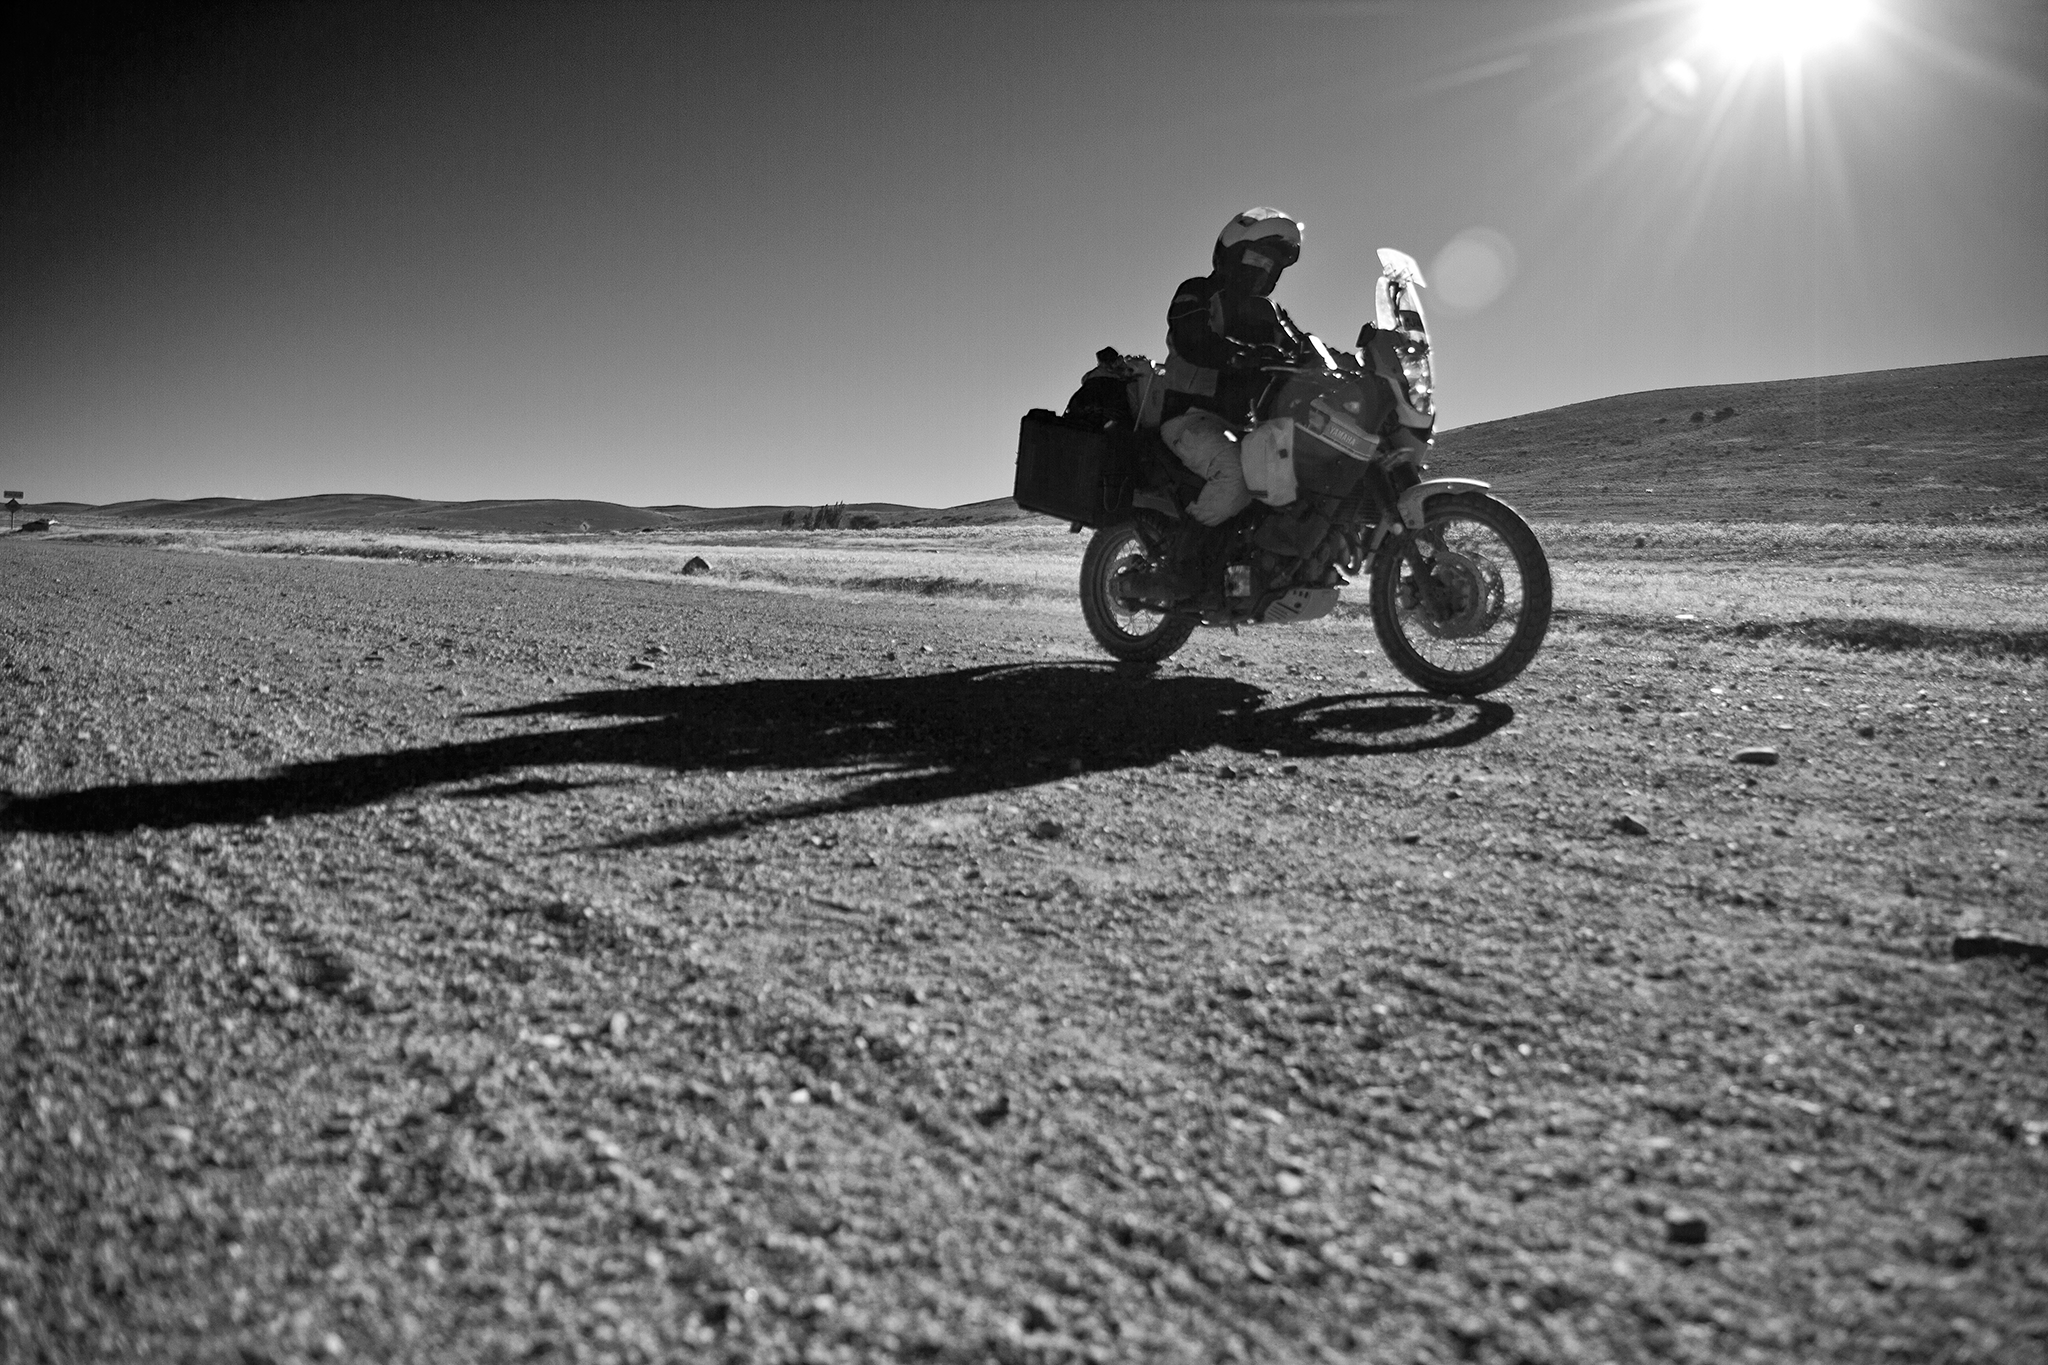 """Although each day of riding offered serious """"helmet time"""" for self-reflection, we spent evenings swapping stories of teenage stupidity, past regrets and far-off dreams. With cuts of meat sizzling next to the glowing coals of an Argentinian  asado , I listened to Dad relive the time he plugged a hemorrhaging crankcase with a piece of gum in the Spanish deserts, 30 years ago. Didier's tales of avalanche rescues as part of a ski patrol unit in the French Alps kept me on the edge of my seat, questioning my own alpine ambitions."""